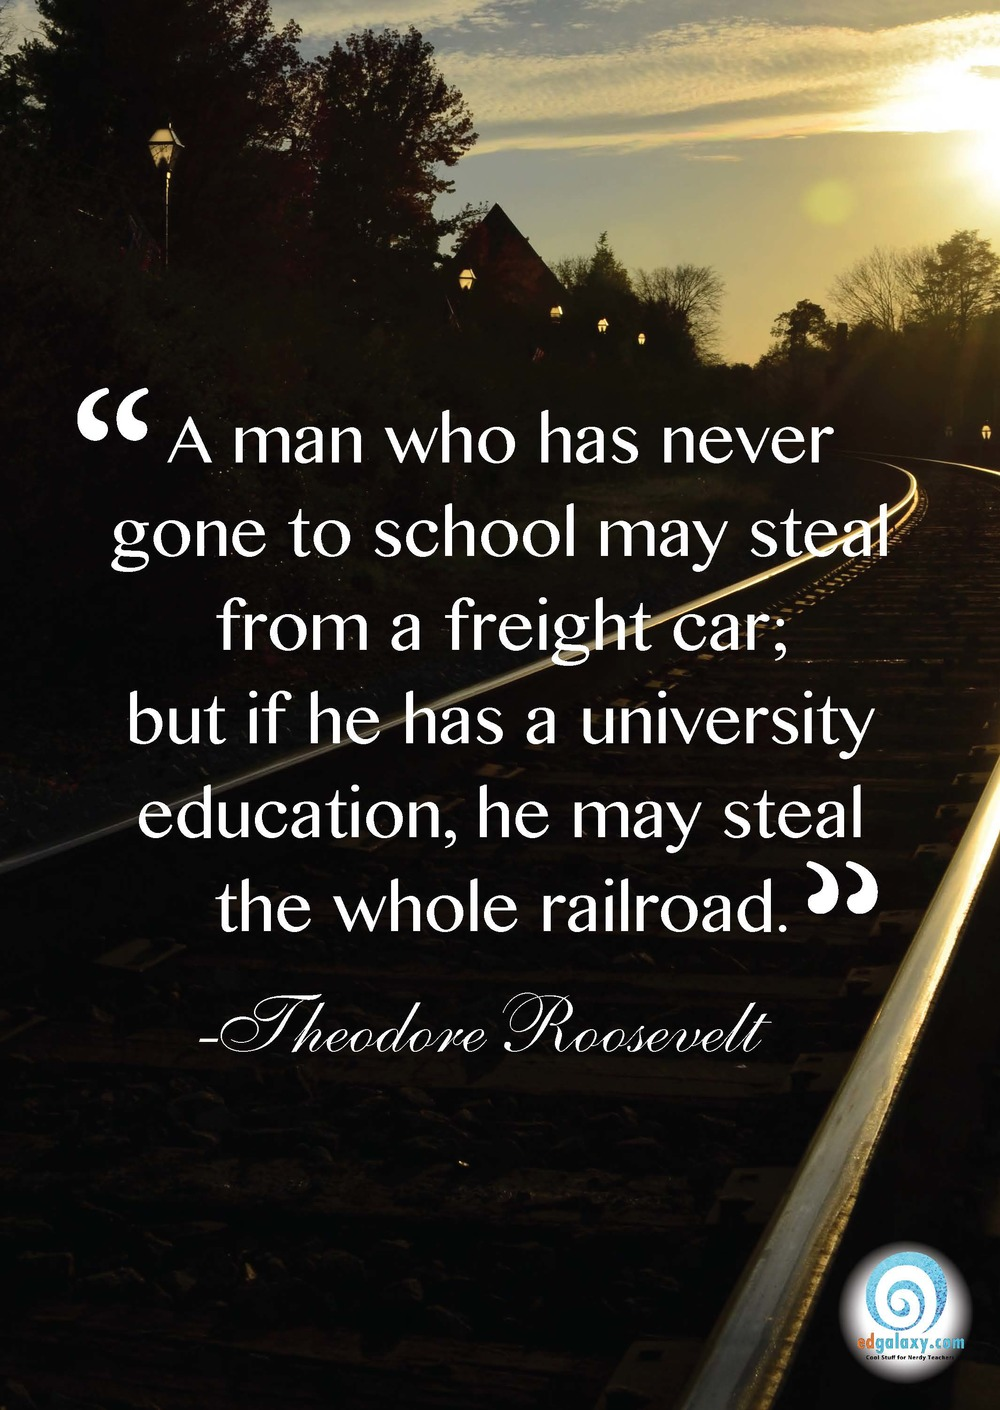 Perfect Education Quotes Posters 2 Jpg_Page_13